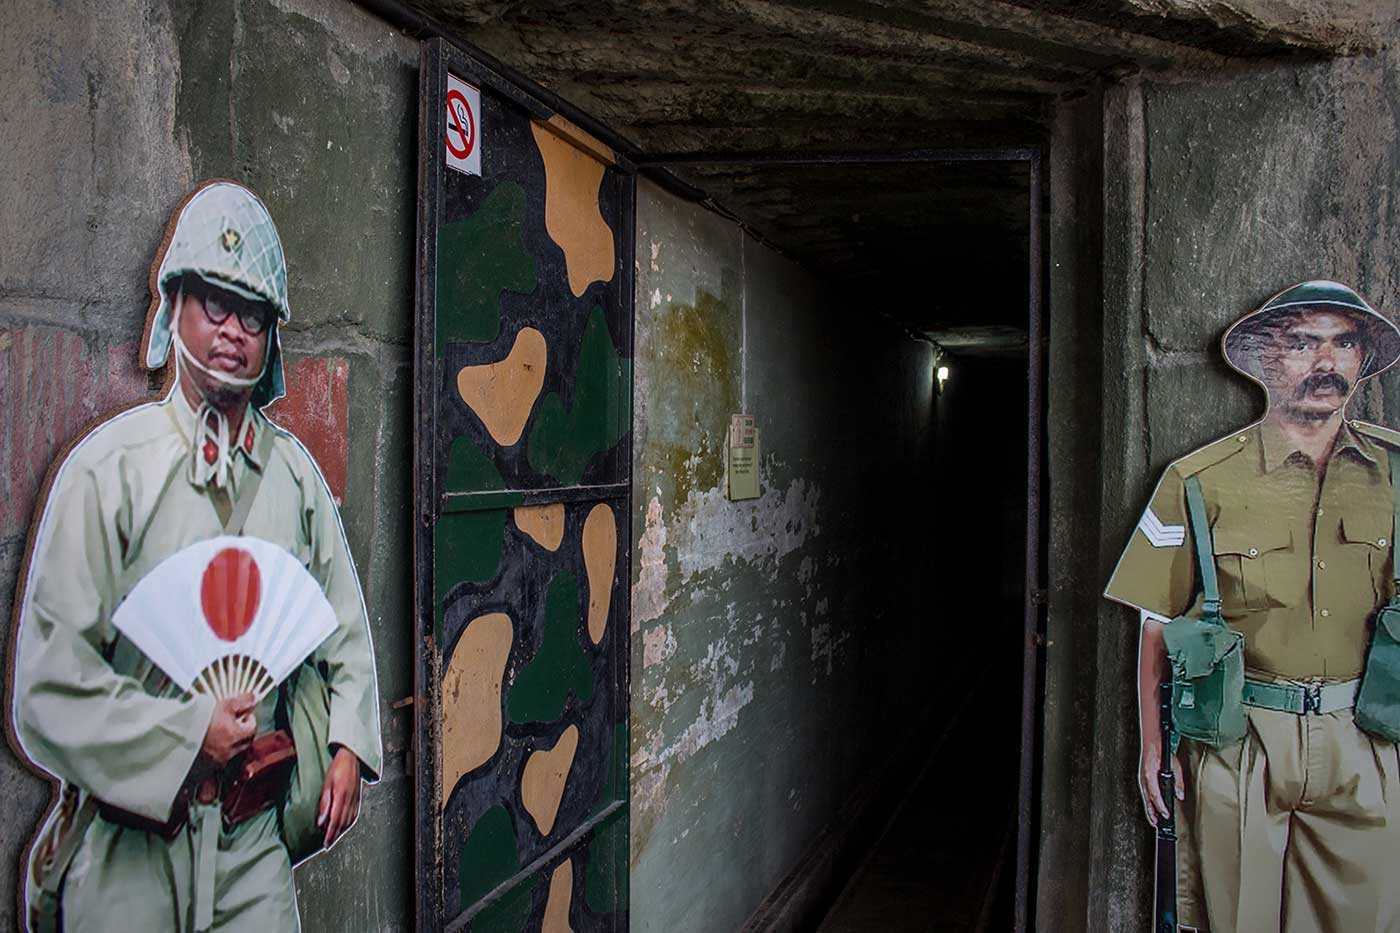 Entrance to the British Army's underground command centre. Penang War Museum, Malaysia.